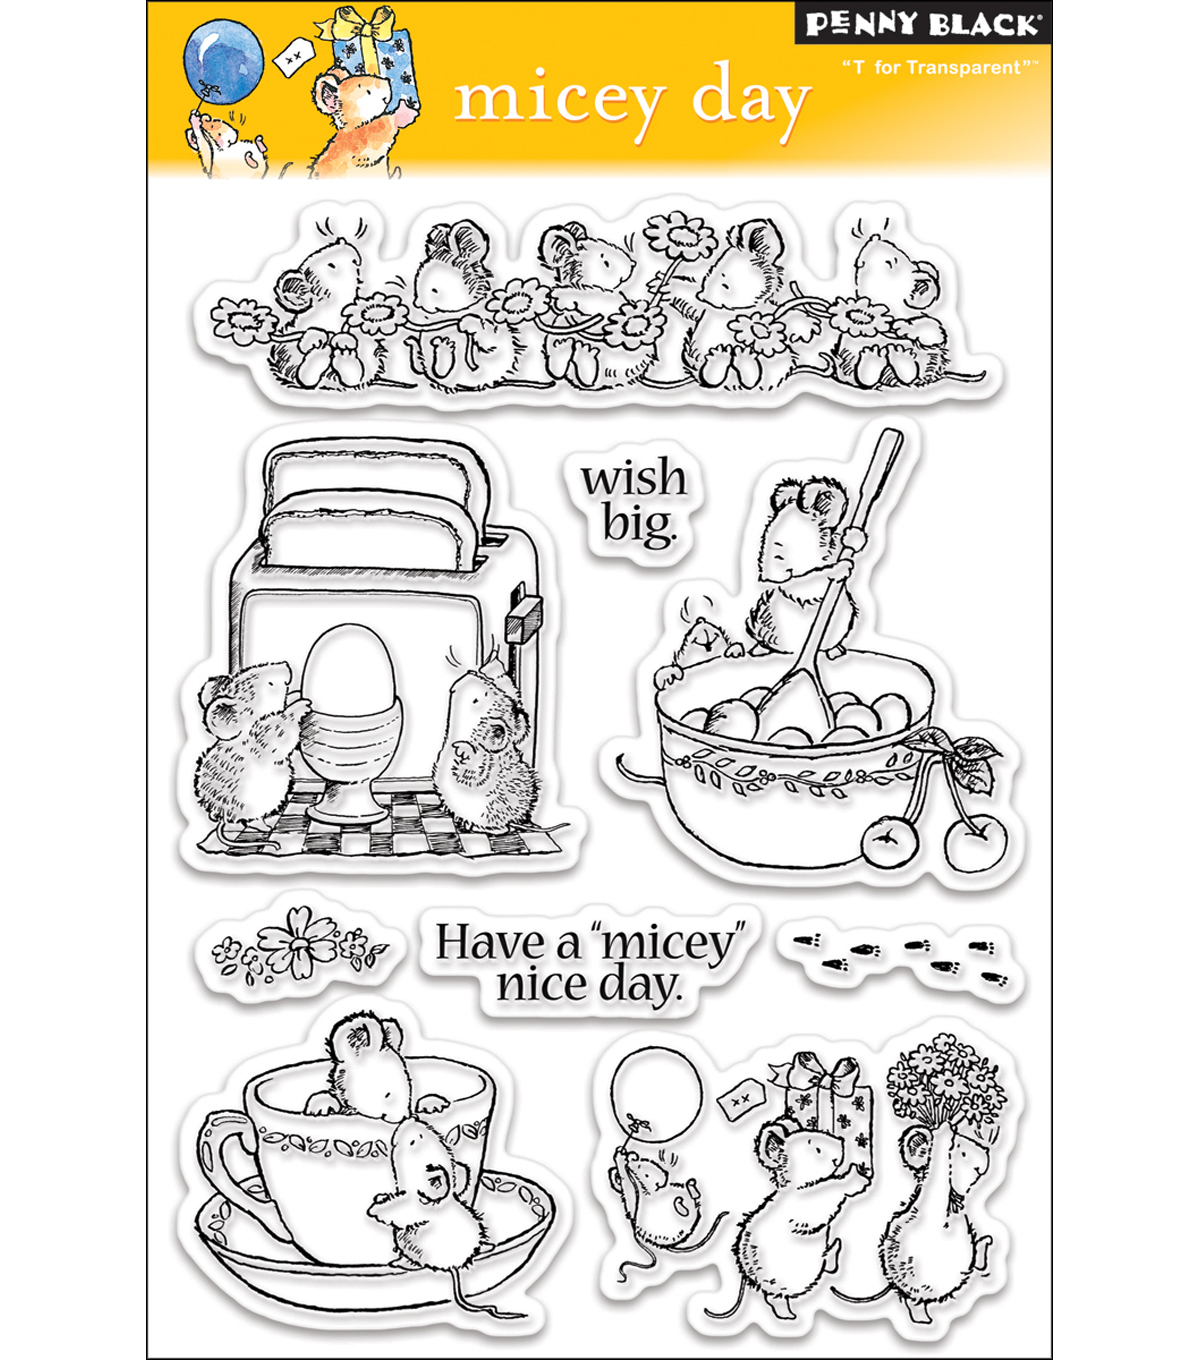 Penny Black Clear Stamps 5\u0022X7.5\u0022 Sheet-Micey Day